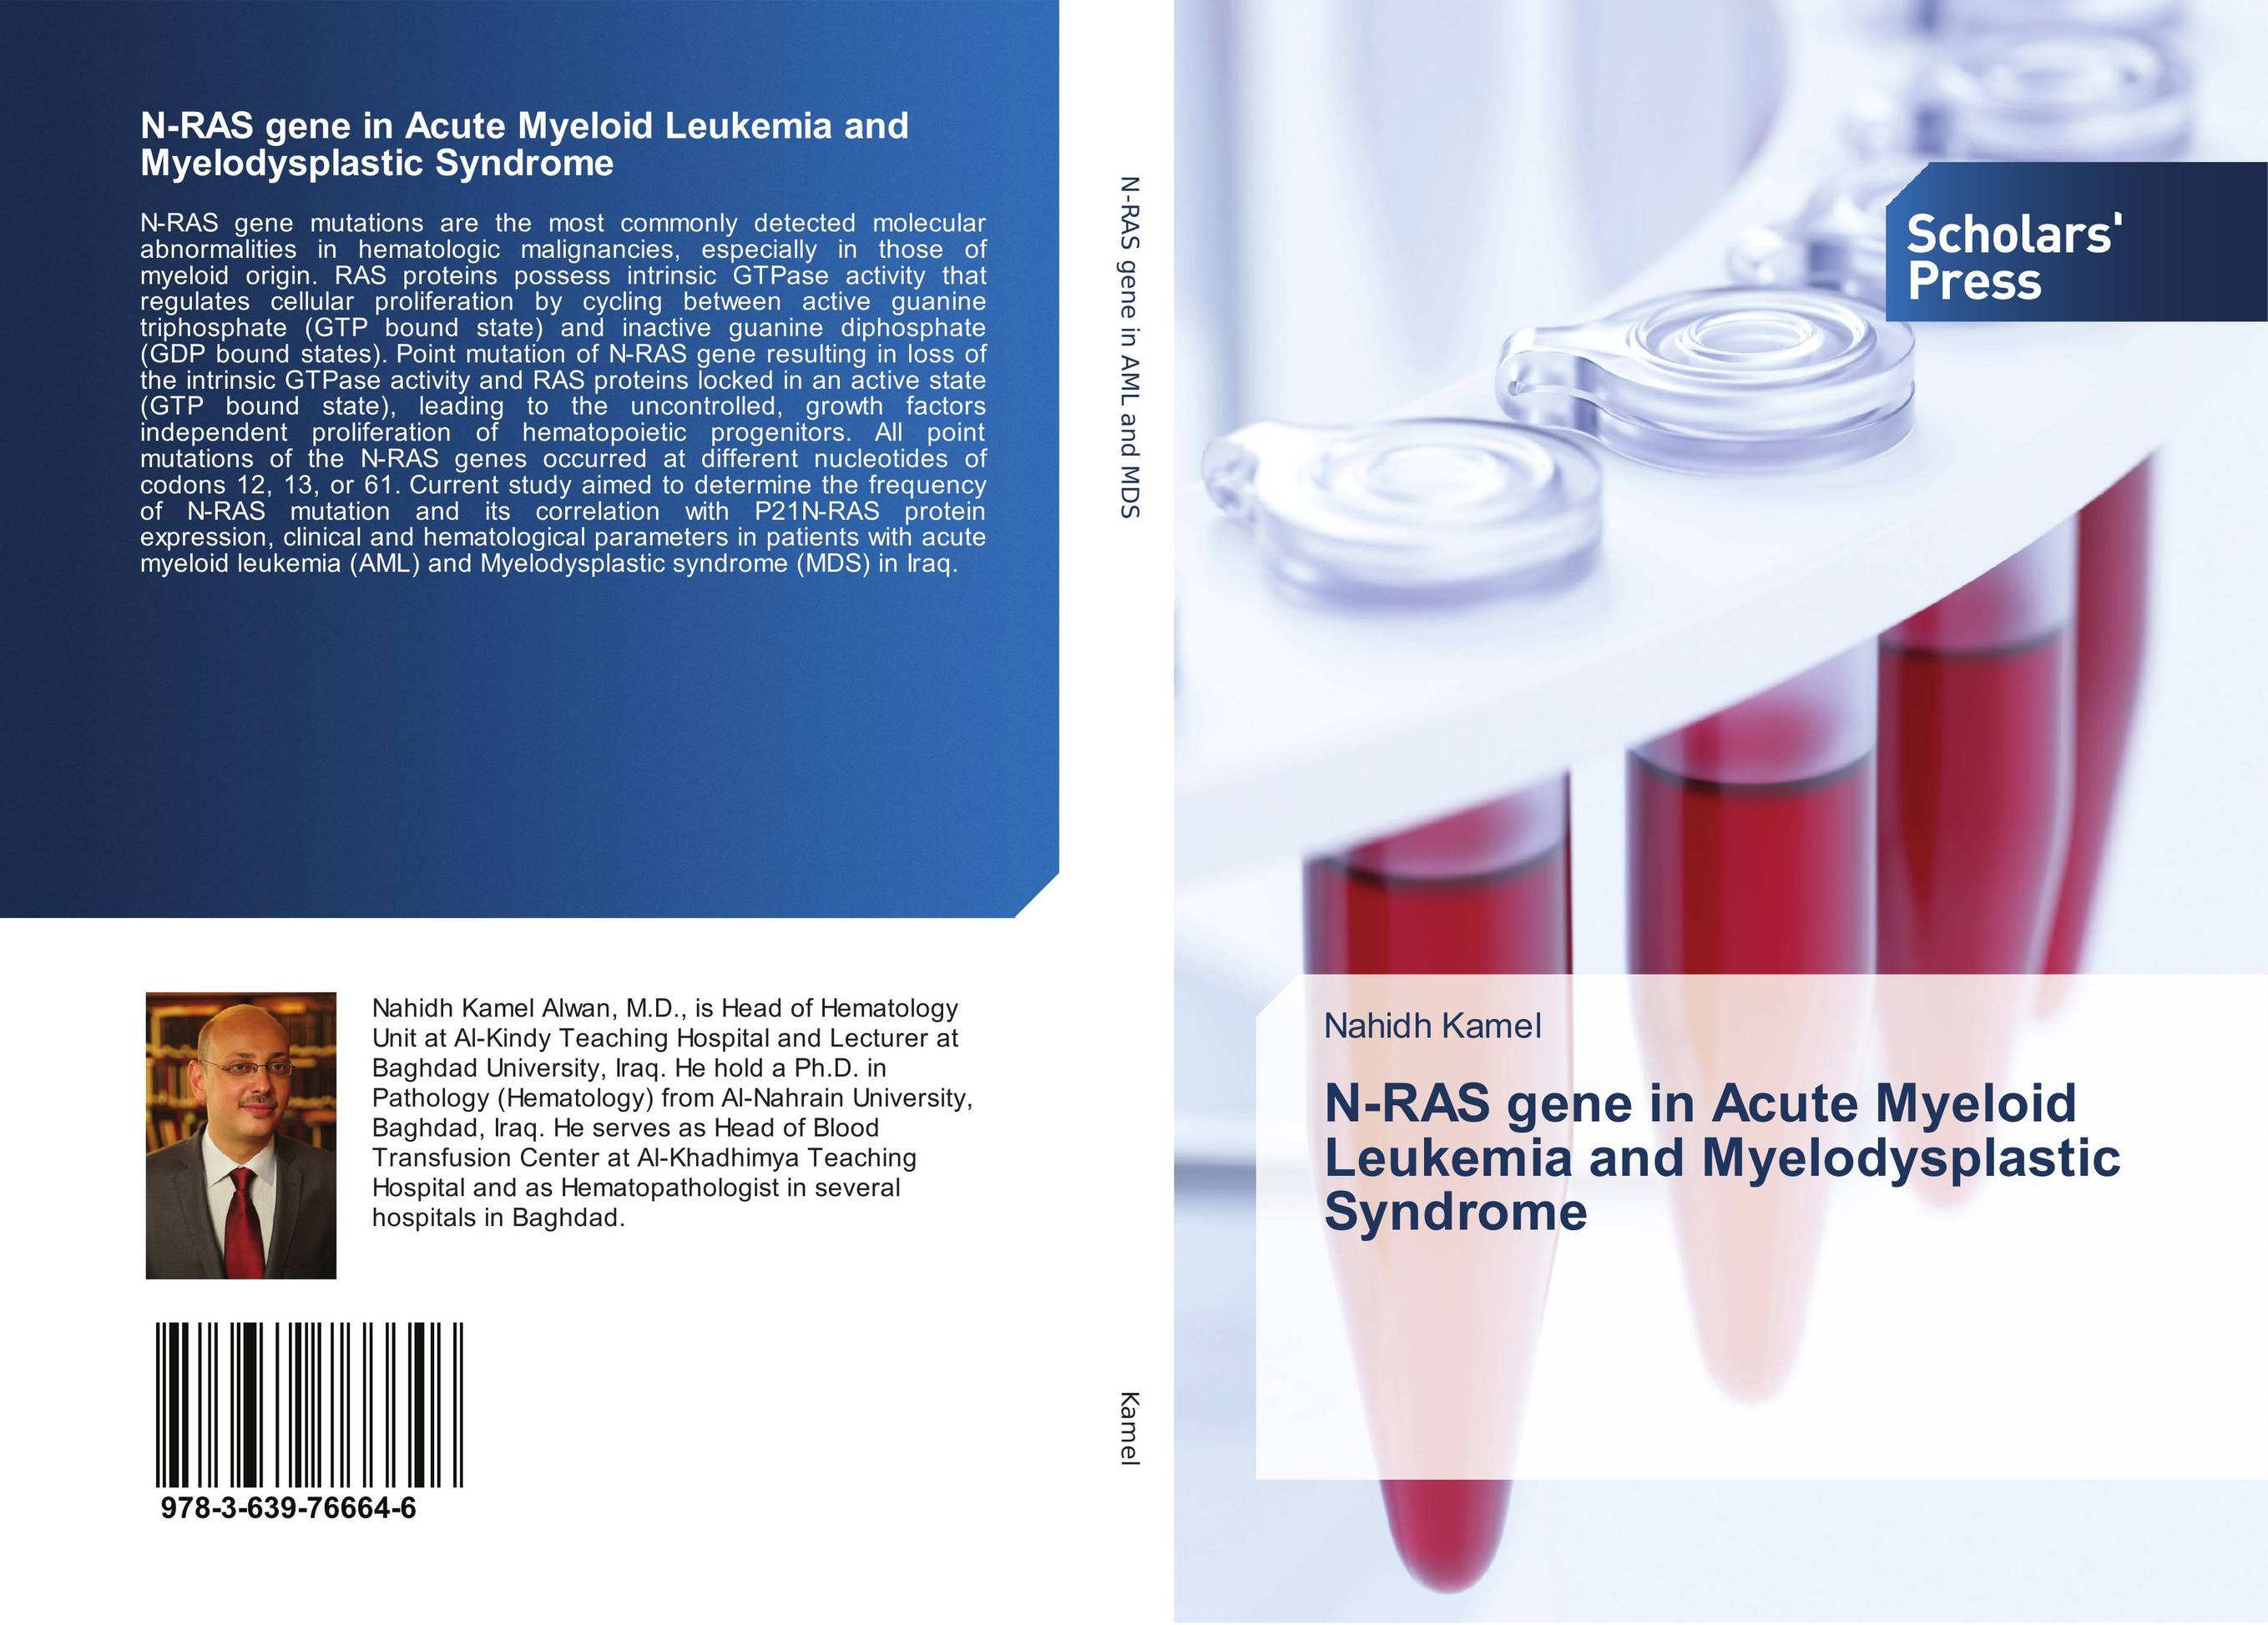 N-RAS gene in Acute Myeloid Leukemia and Myelodysplastic Syndrome affair of state an